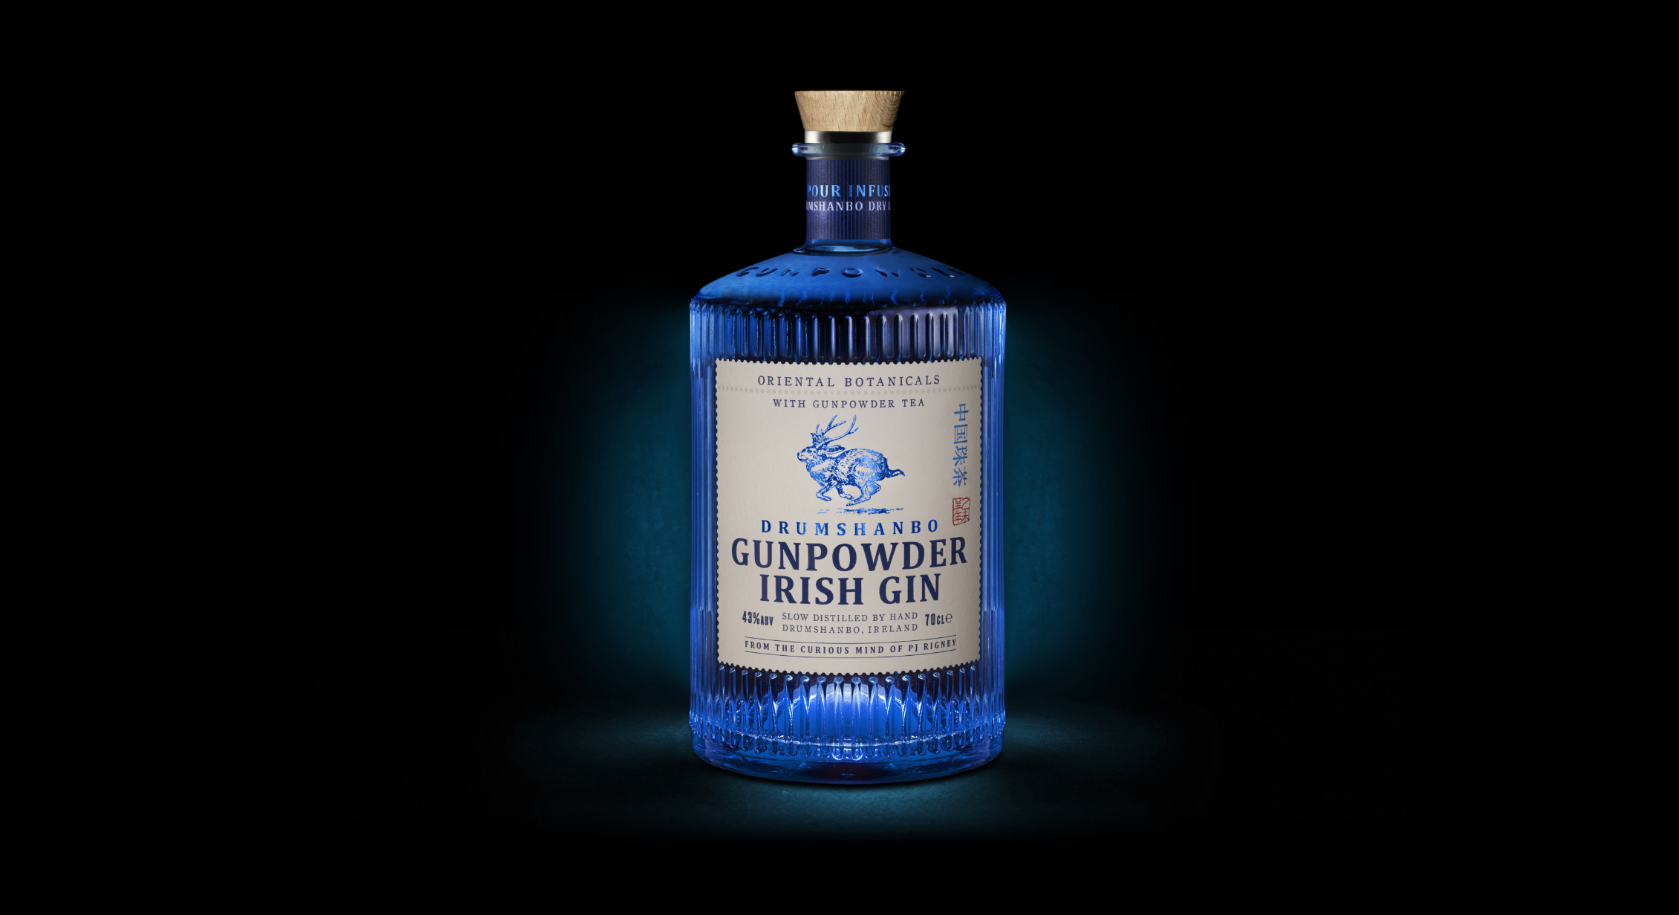 Drumshanbo Gunpowder Irish Gin 50cl-1